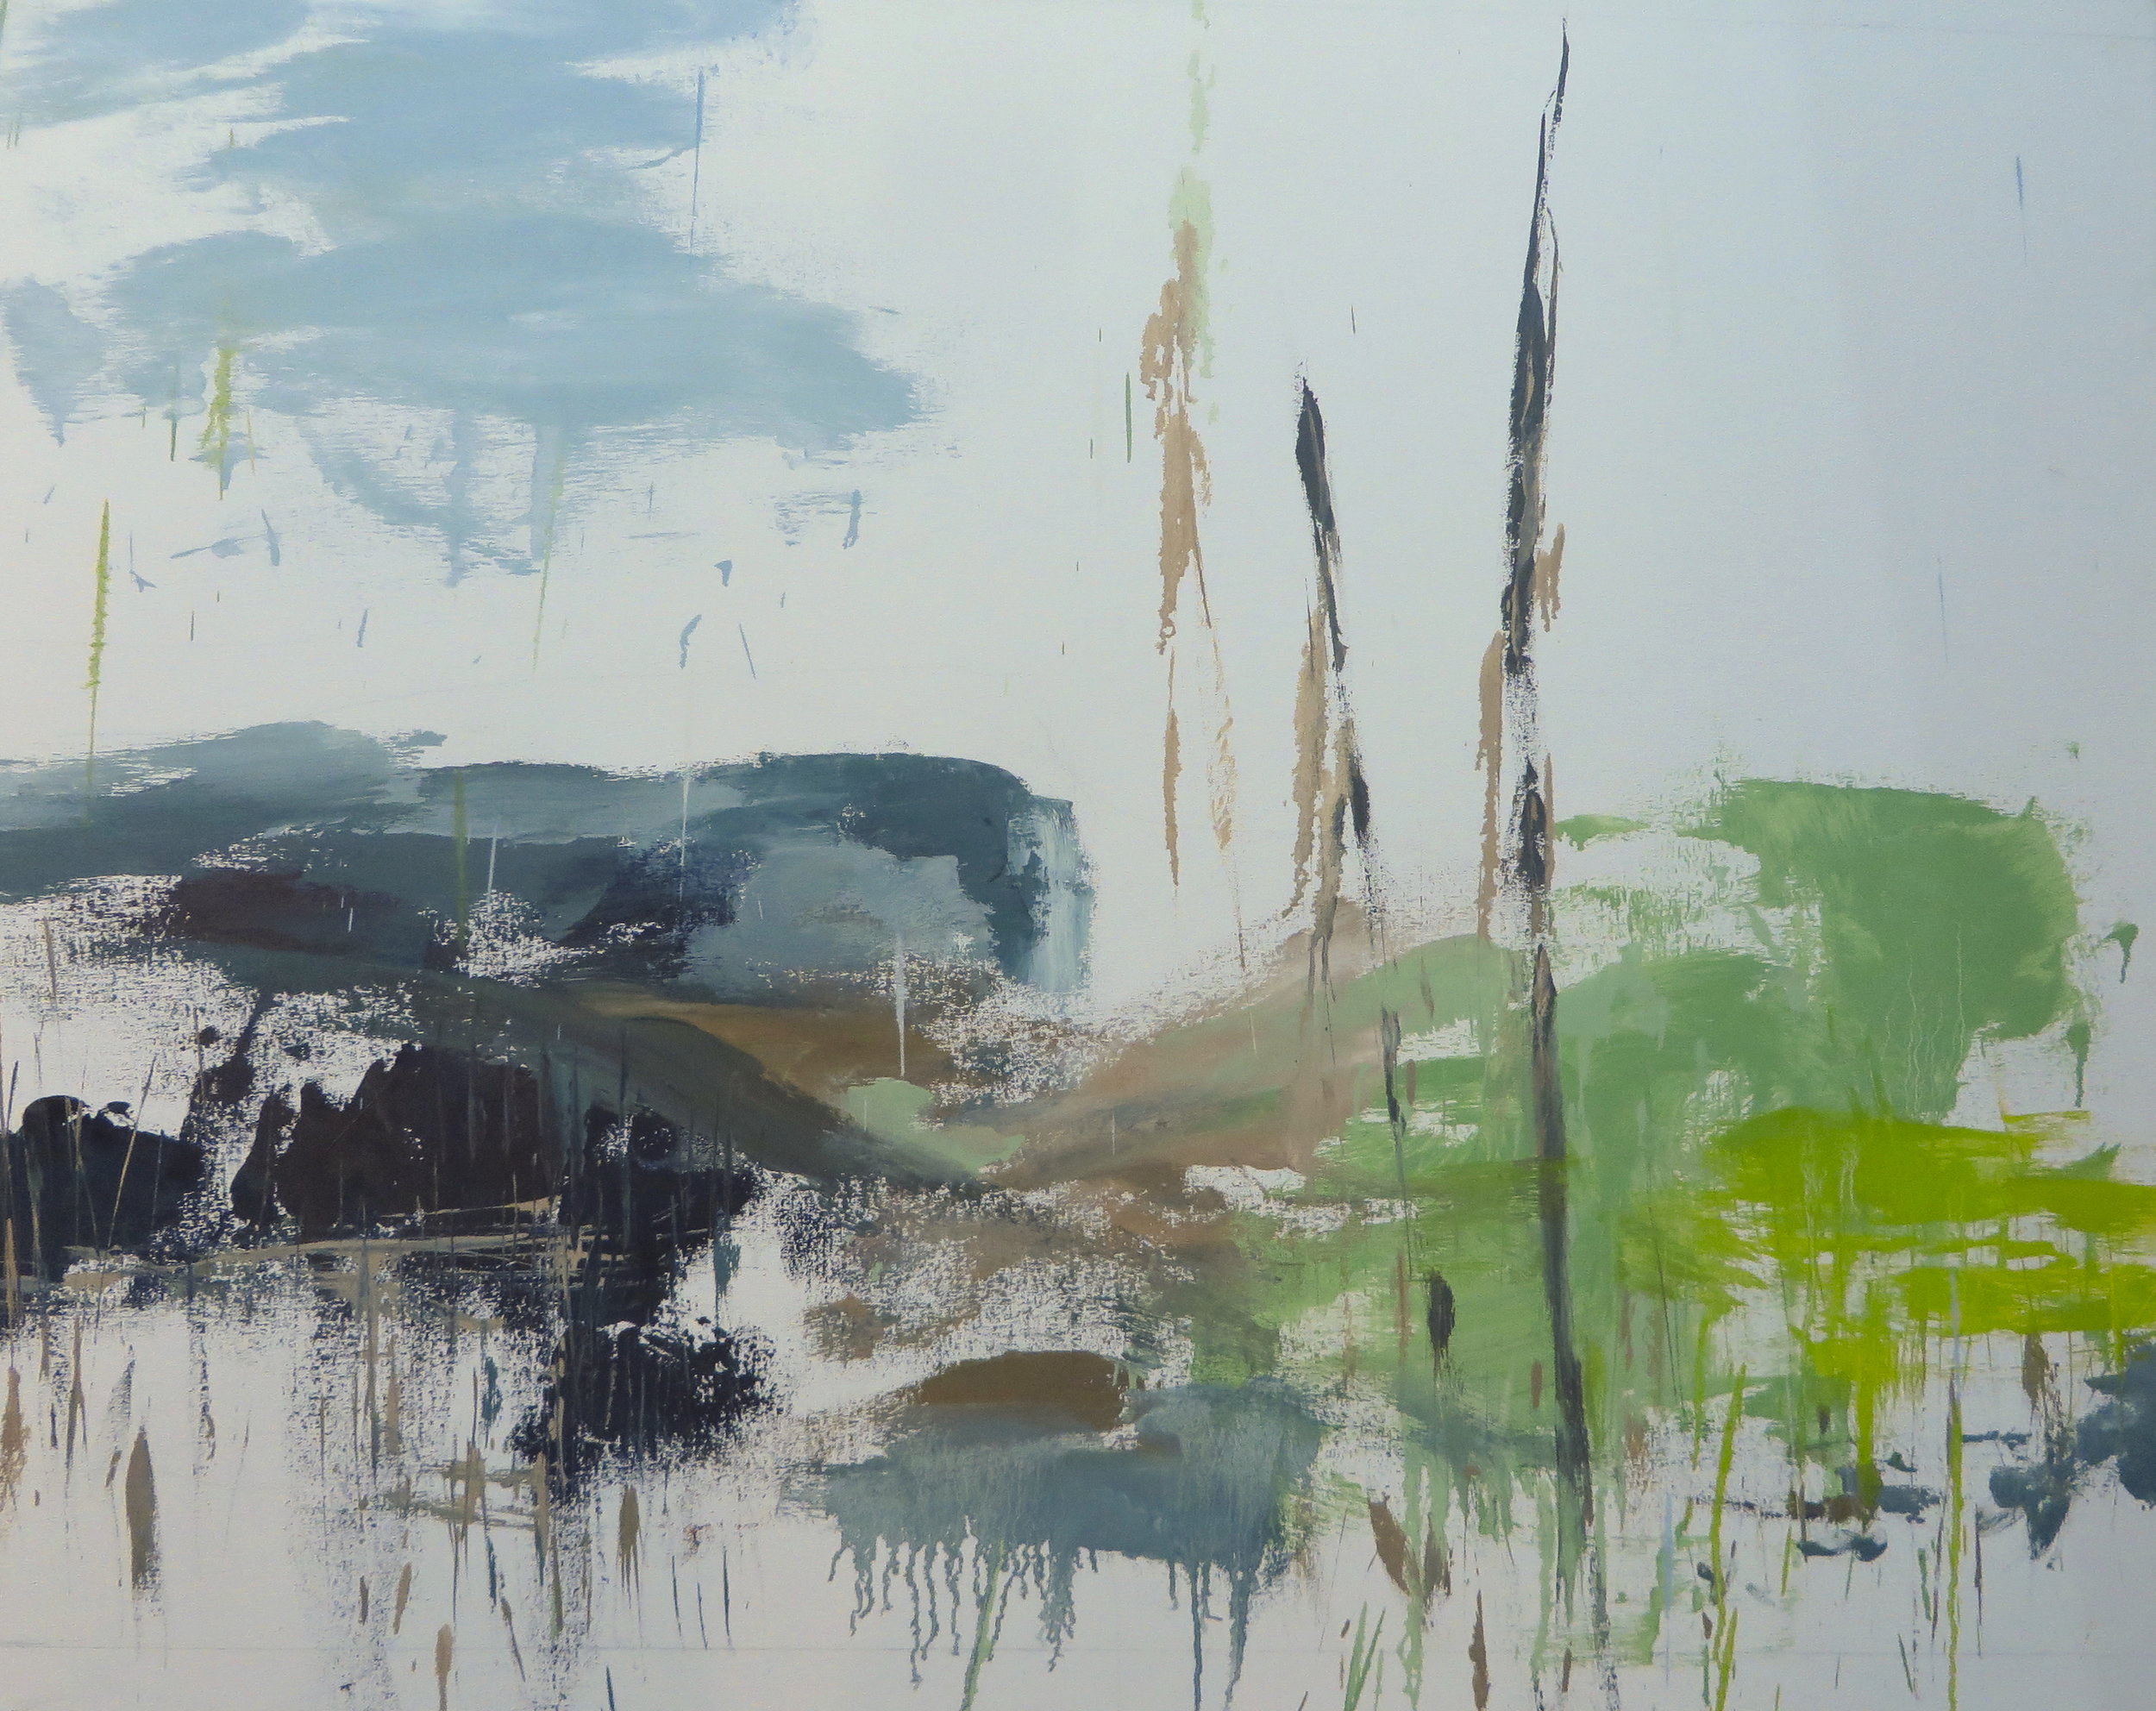 Imagined Landscape, 2009, oil, canvas, 48 x 54 in, $7,800